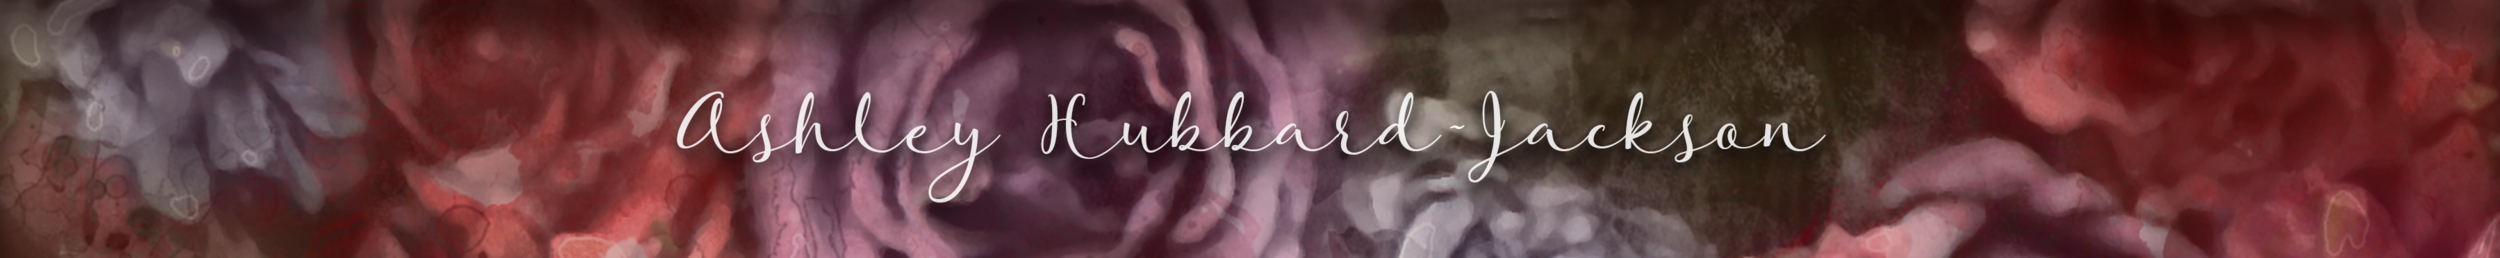 footer banner with name.png